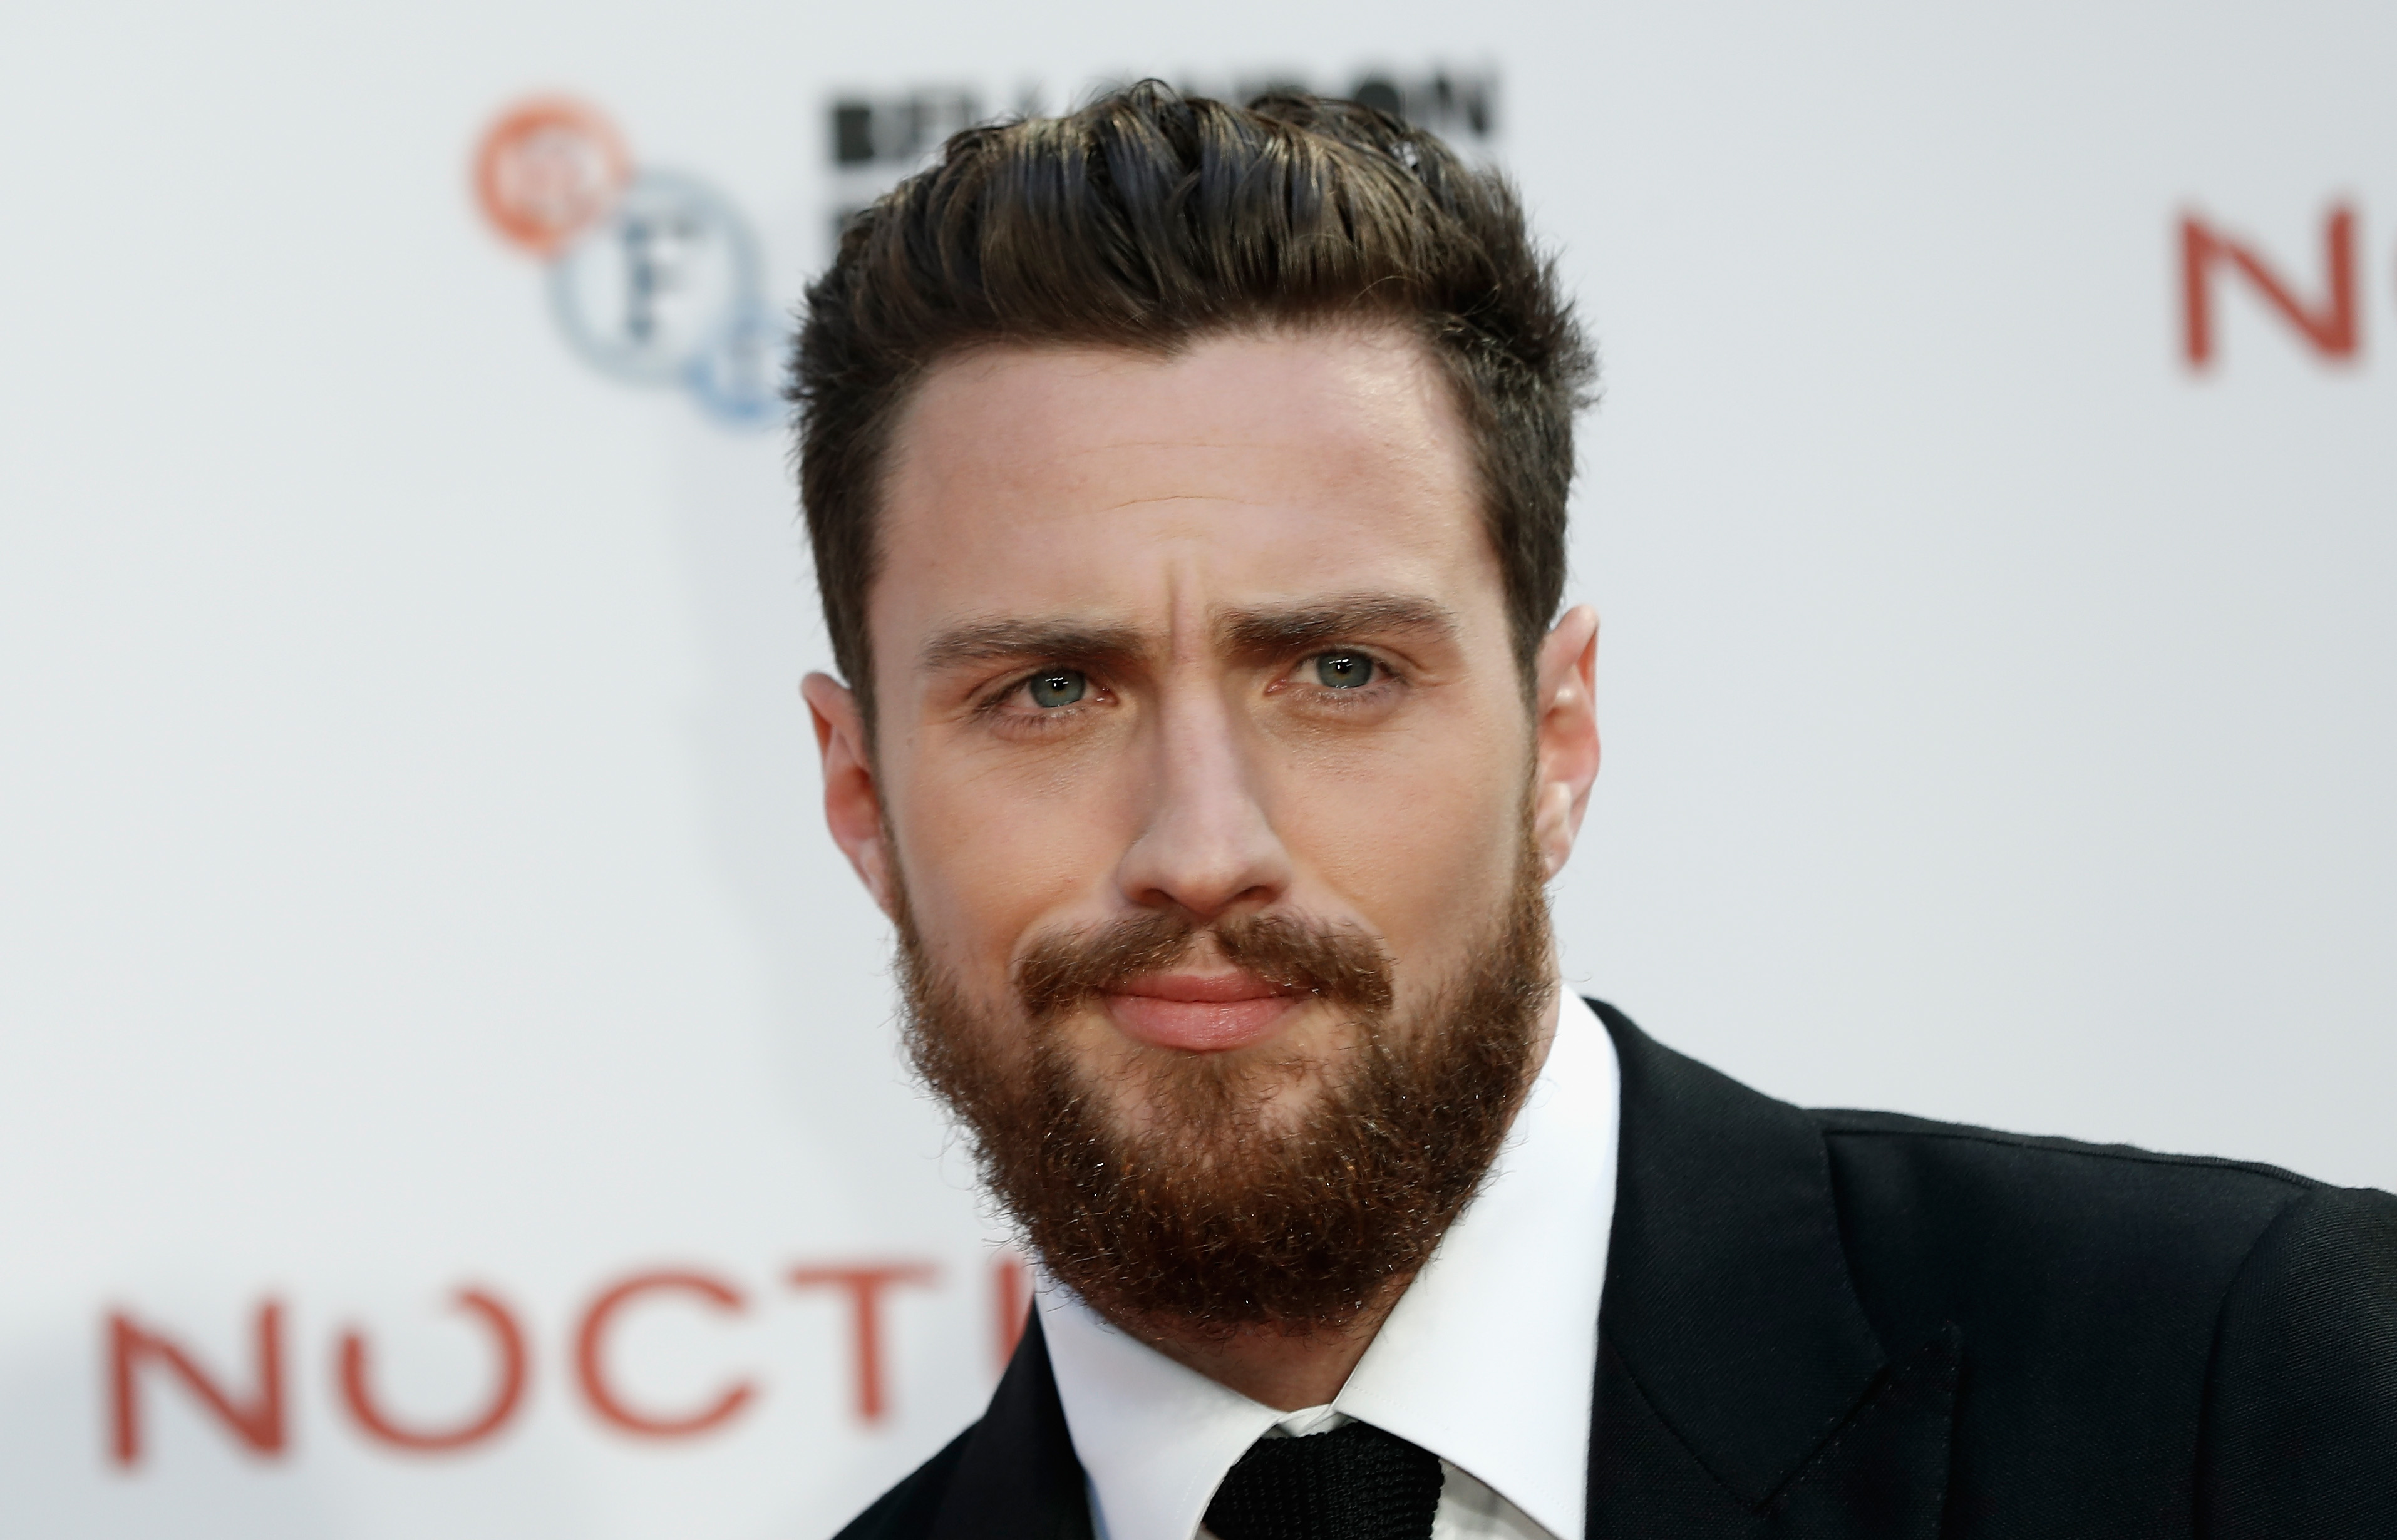 Aaron Taylor-Johnson Backgrounds, Compatible - PC, Mobile, Gadgets| 3828x2460 px